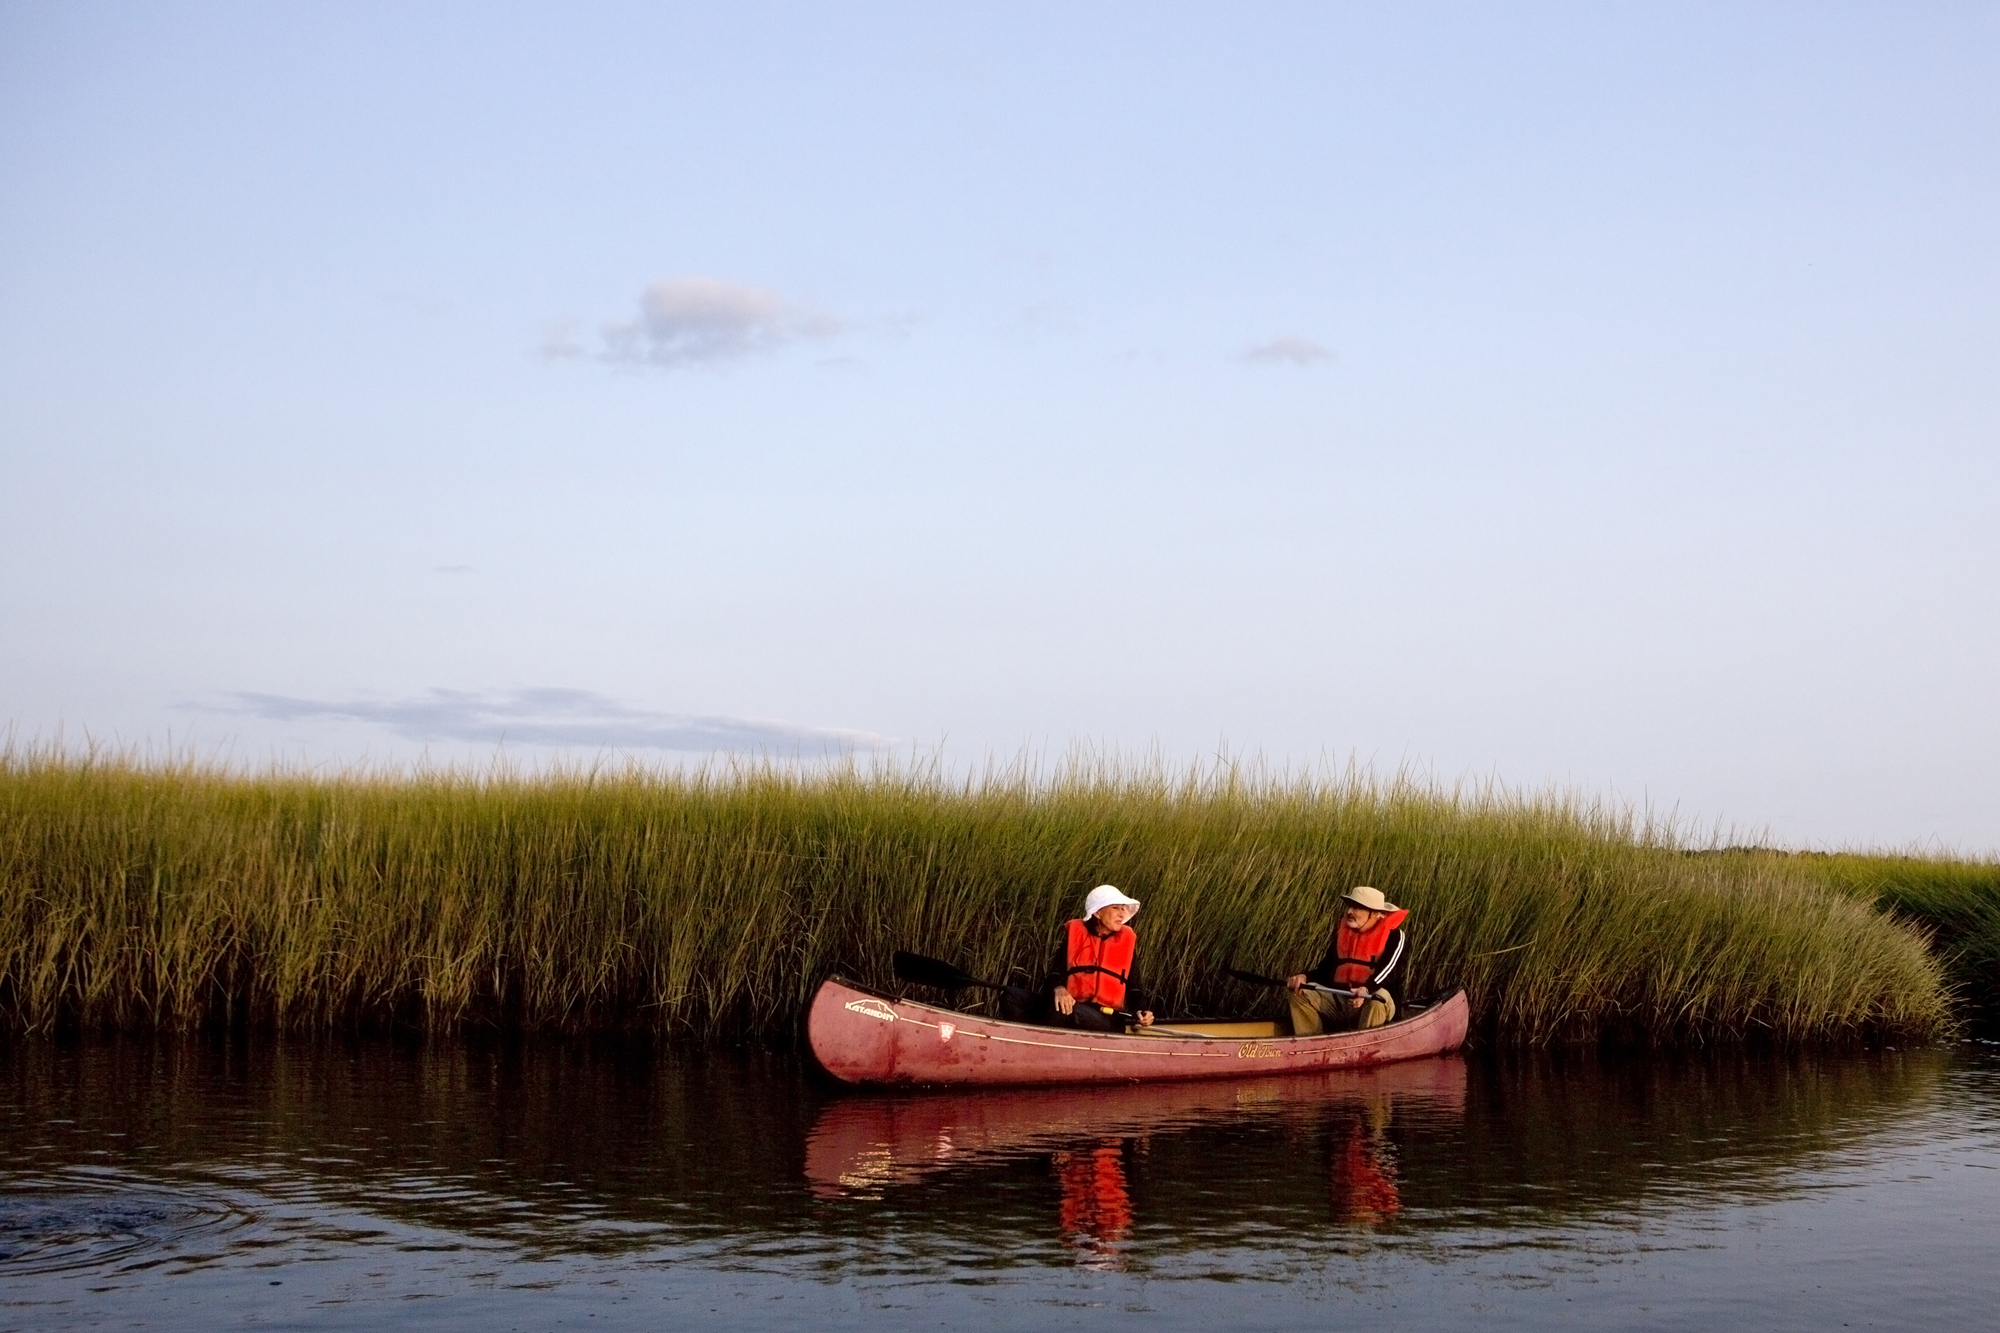 Canoers look for birds and other marsh life during a sunset canoe tour at the Scarborough Marsh Nature Center in Scarborough, Maine on August 25.